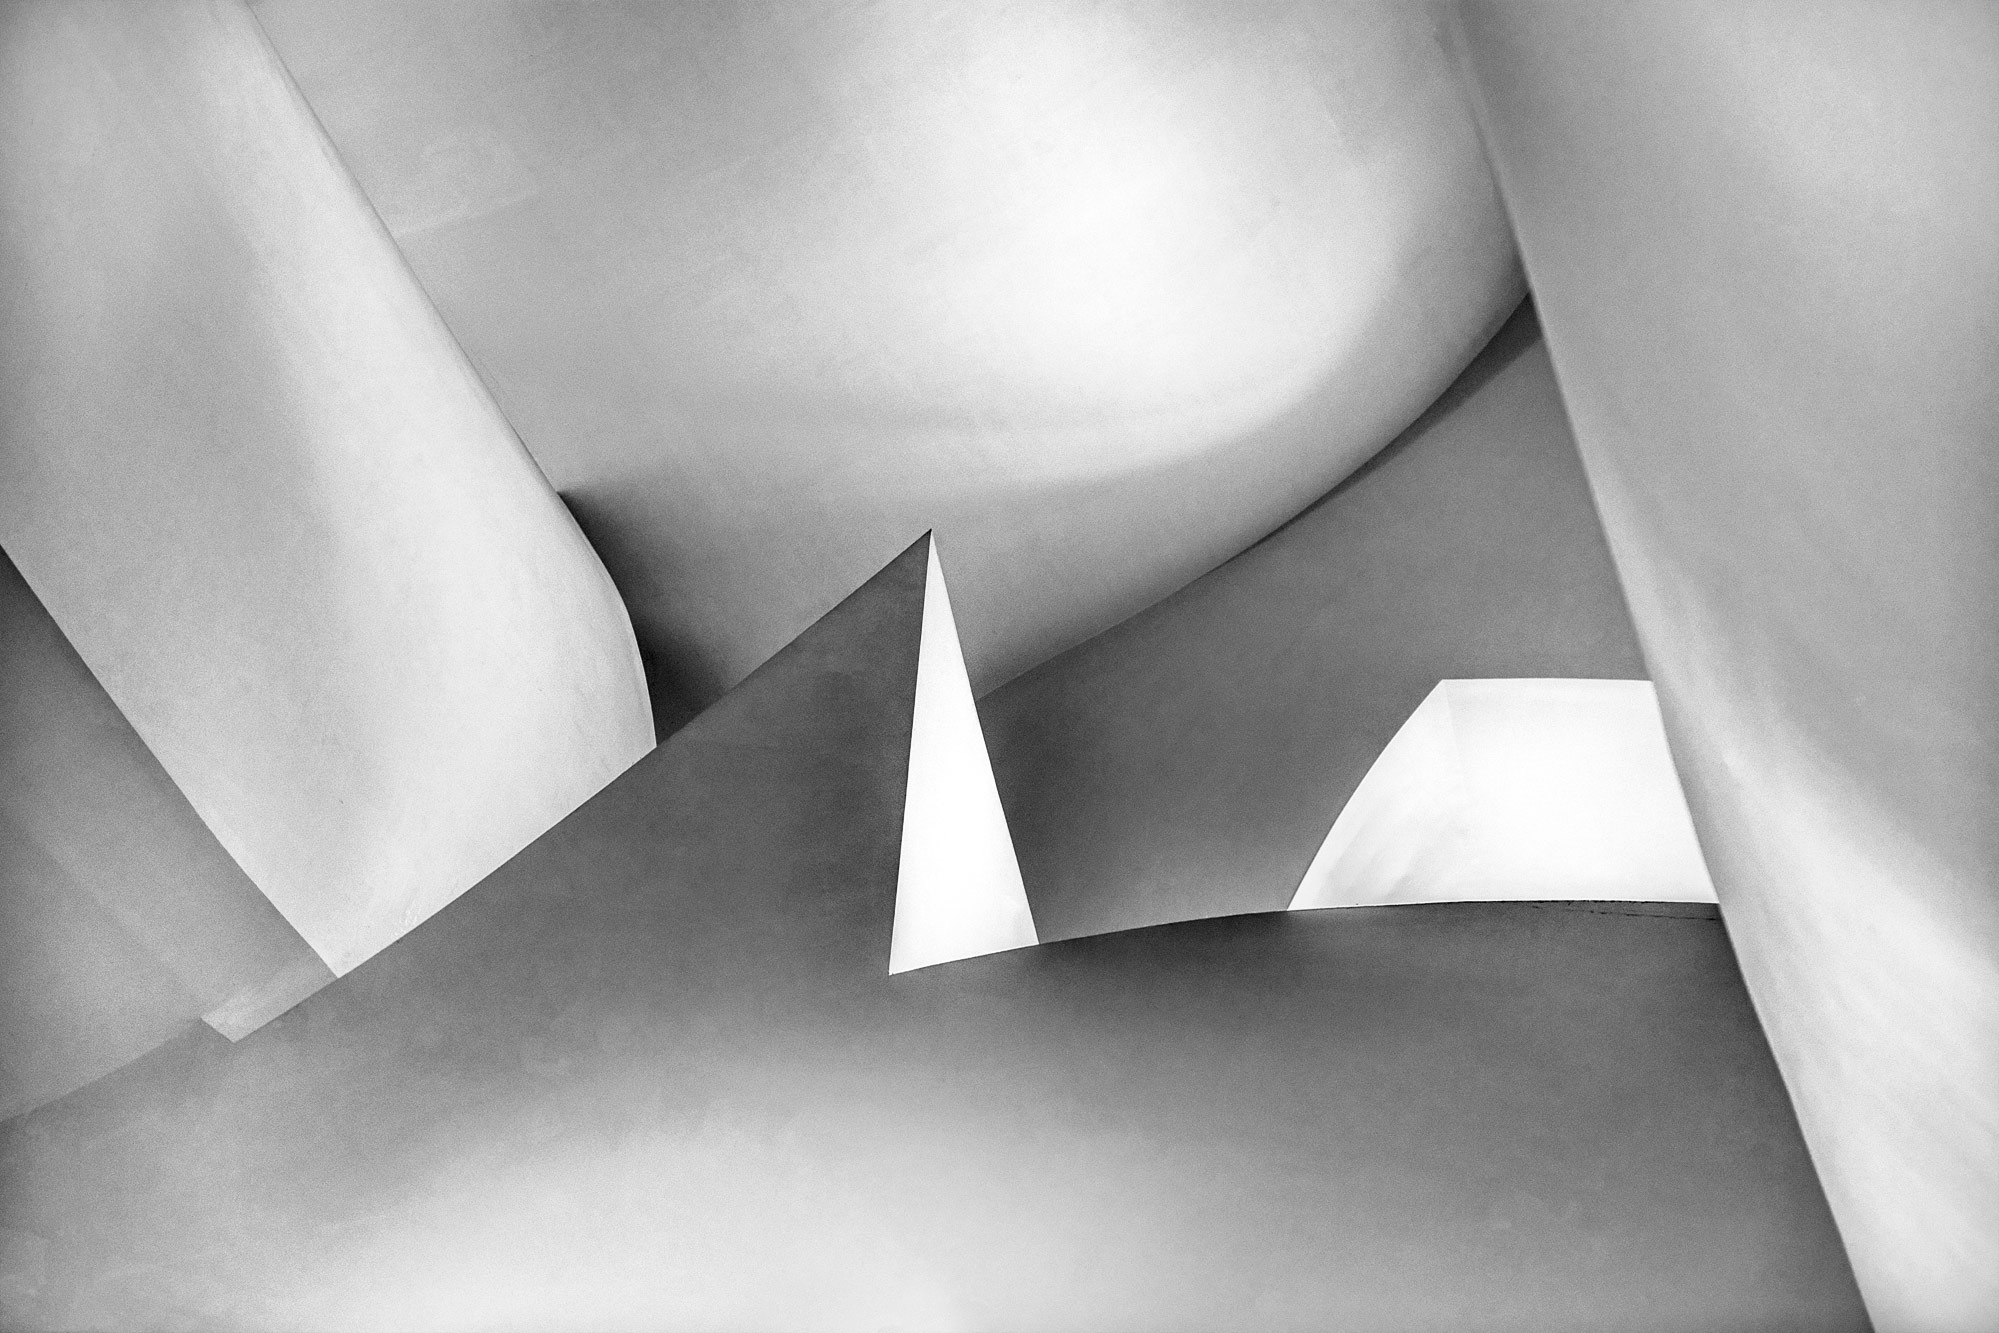 Chris Clor black and white graphic shapes